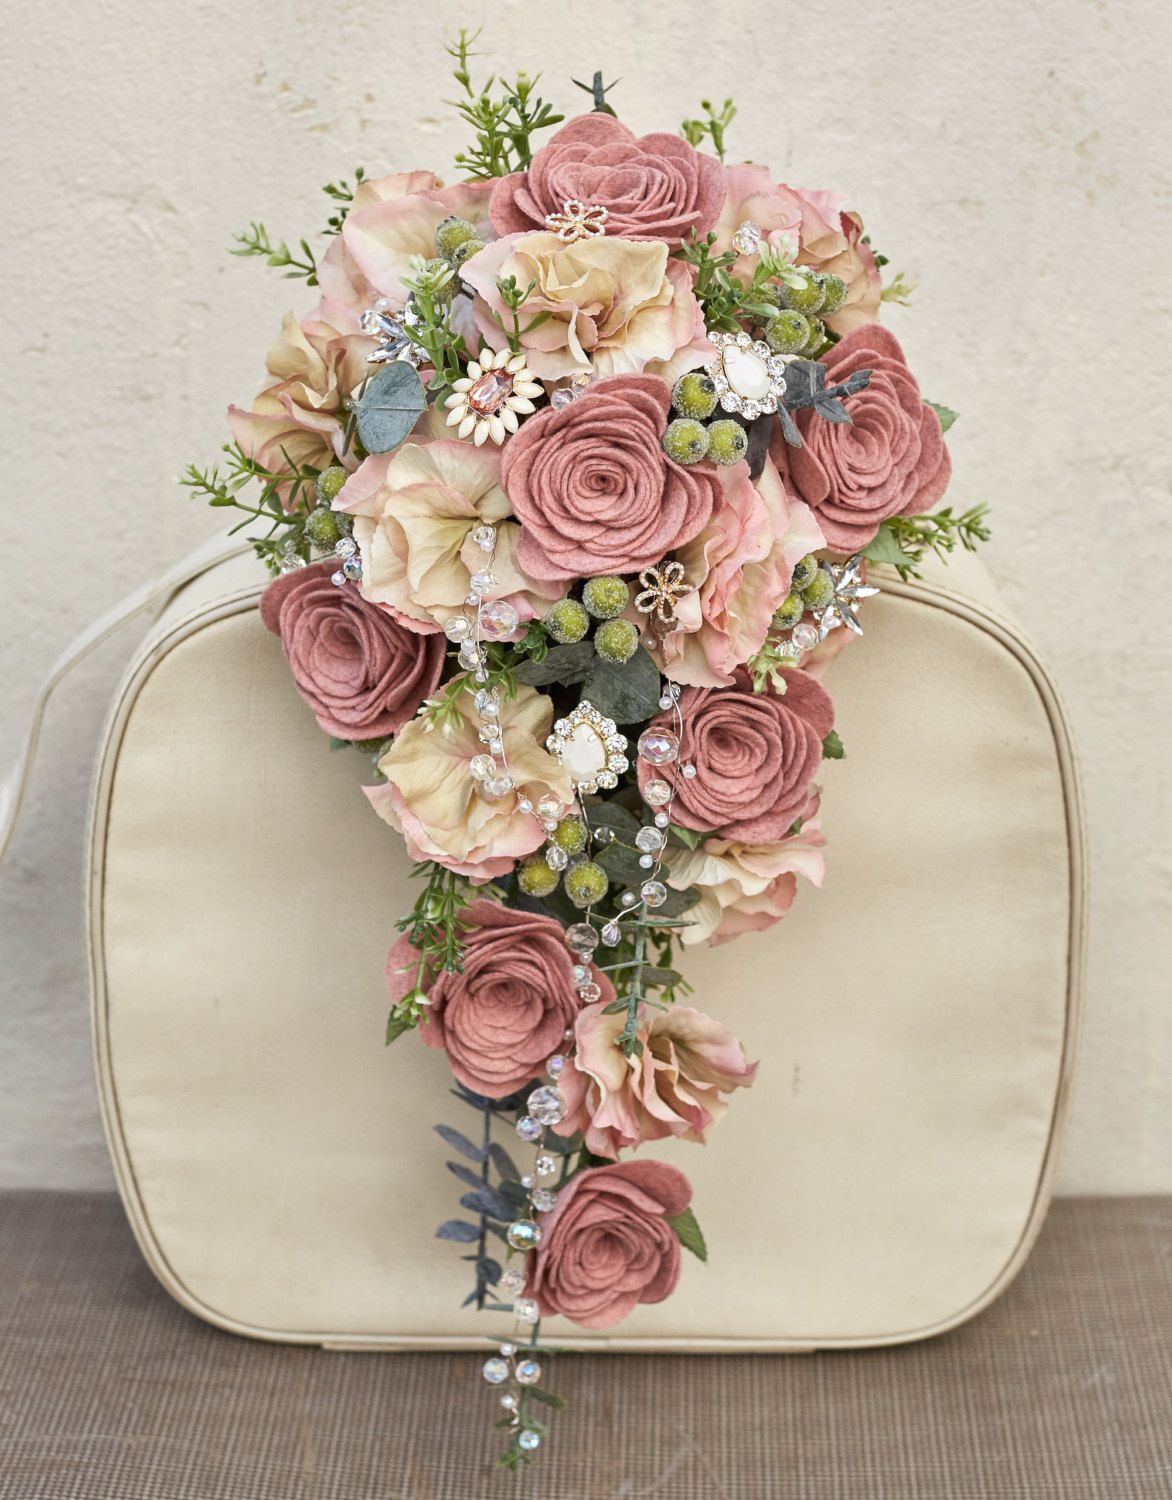 Pin by michelle lund on flower decorating pinterest bouquet